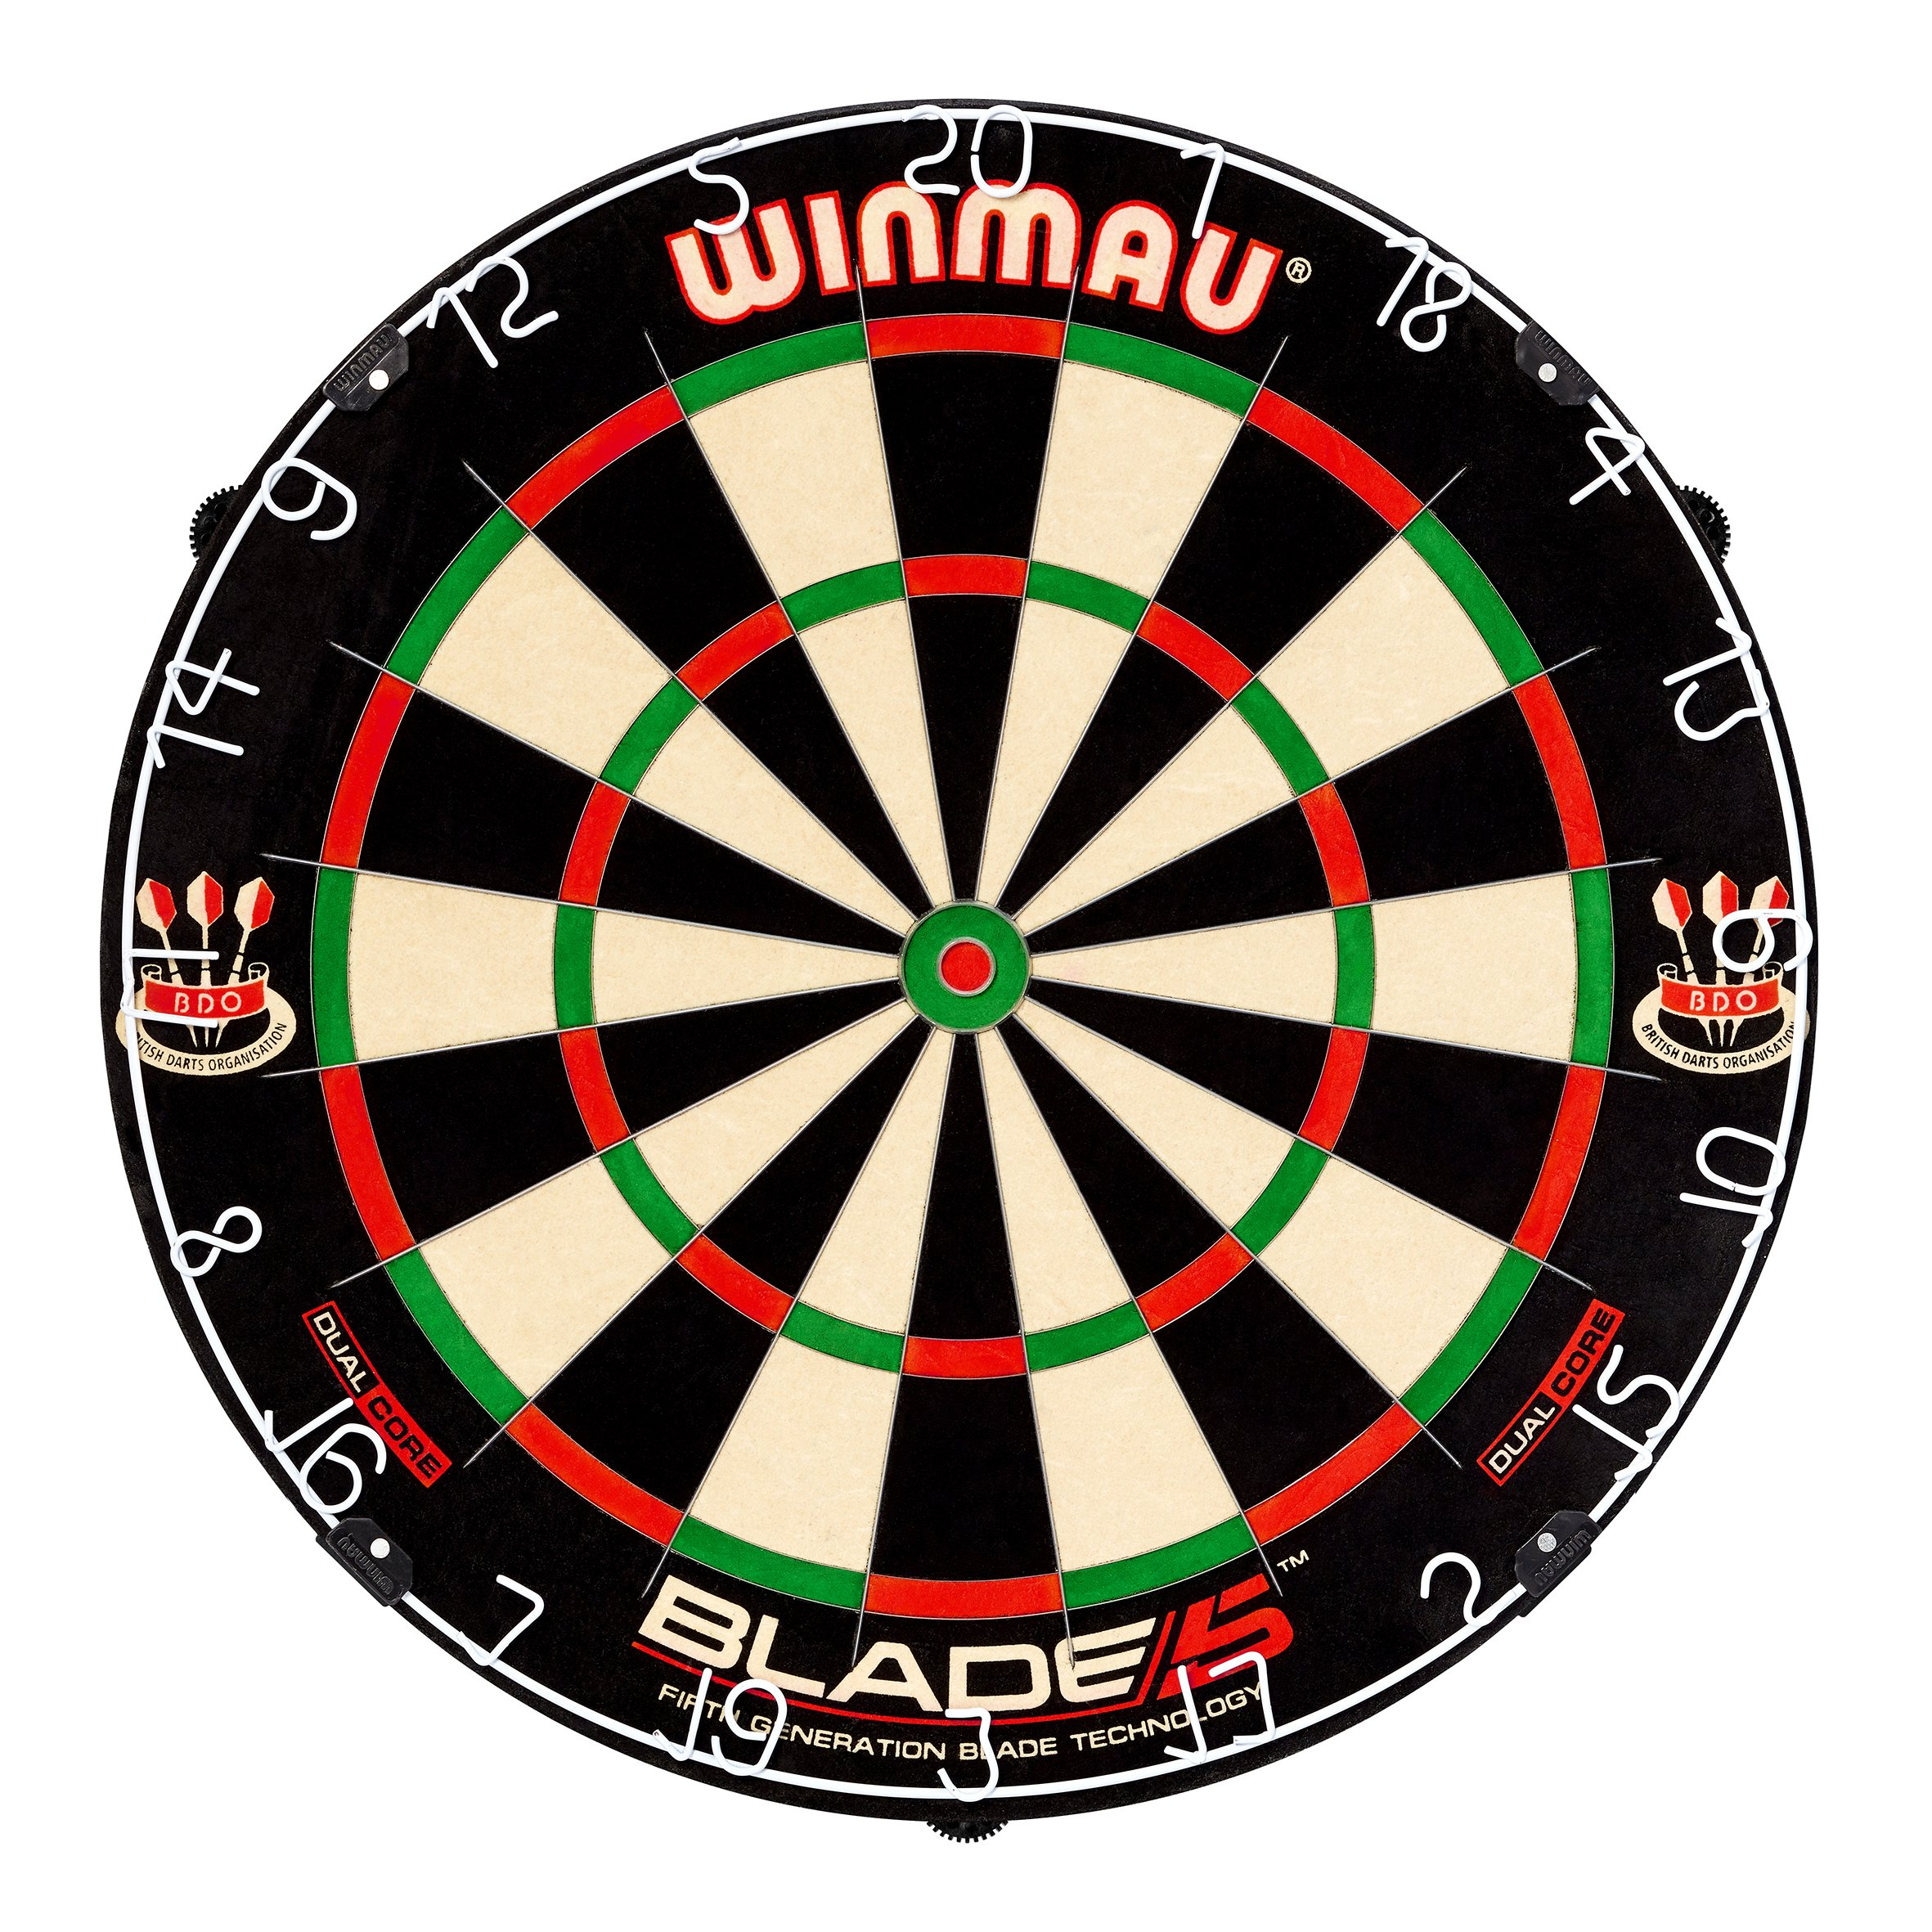 Winmau Blade 5 Dual Core Bristle Dartboard with Increased Scoring Area and Improved Dart Deflection for Reduced Bounce-Outs by Winmau